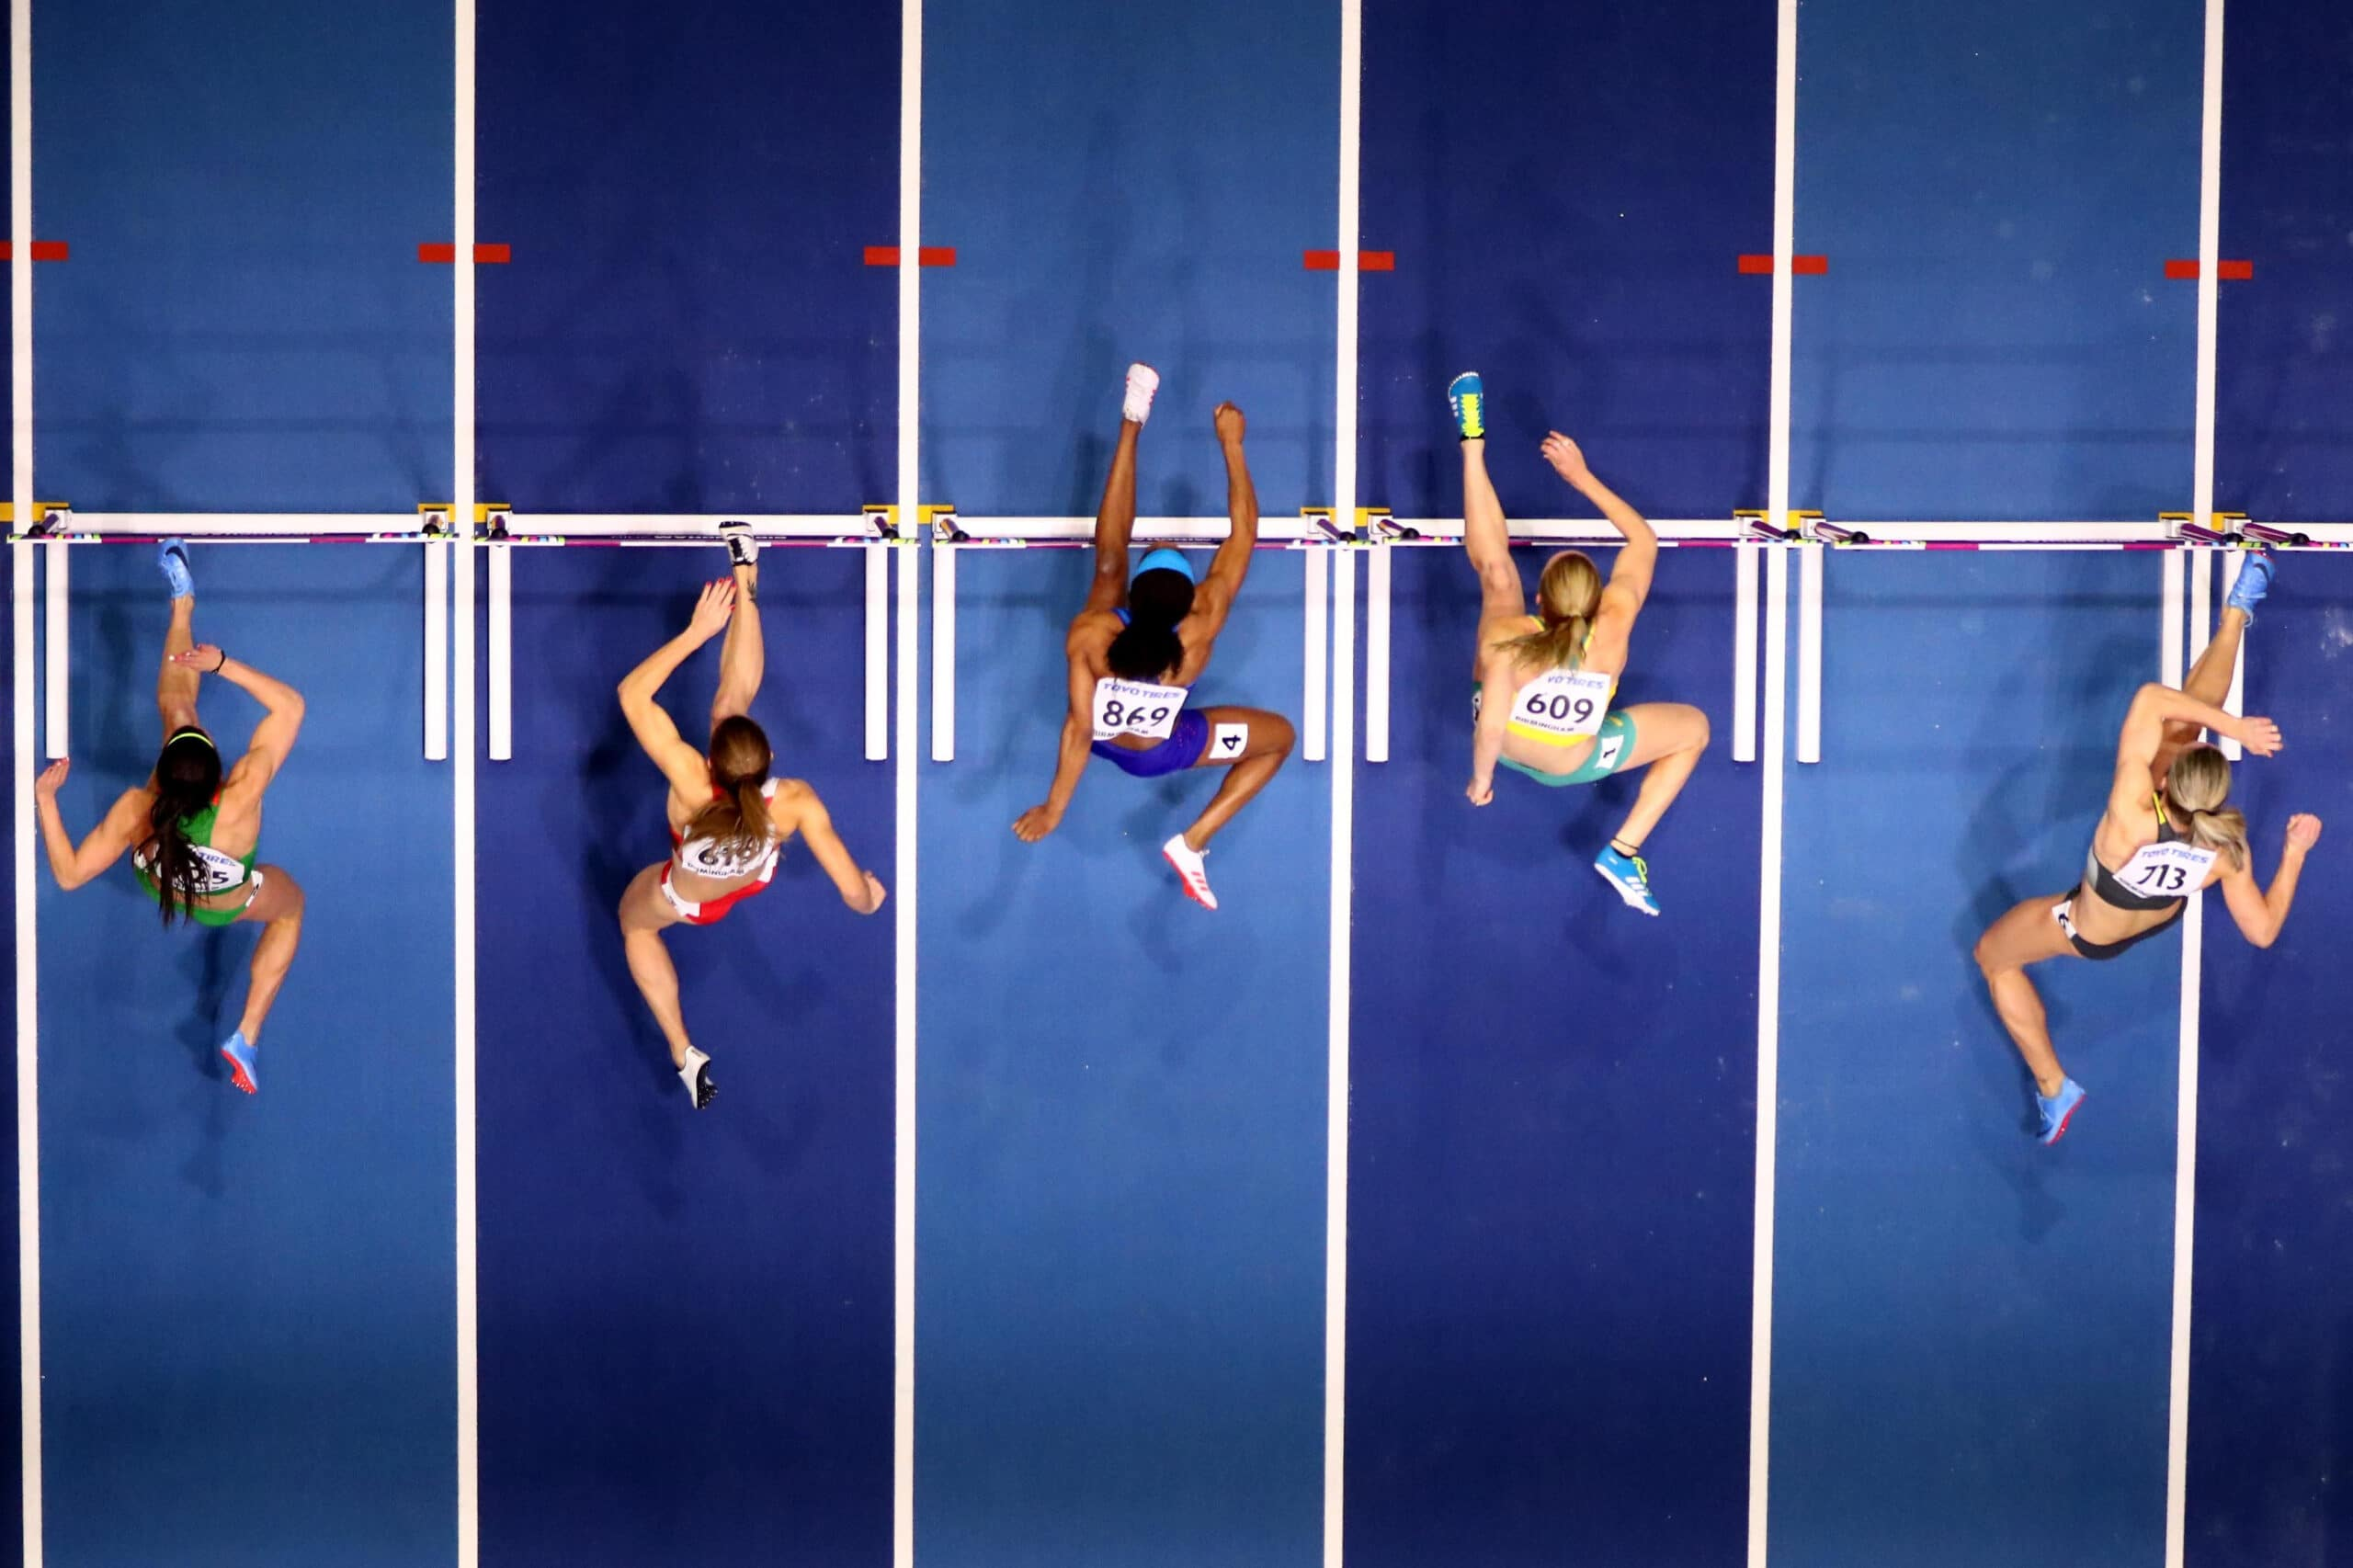 Belgrade22 Timetable Qualification System scaled